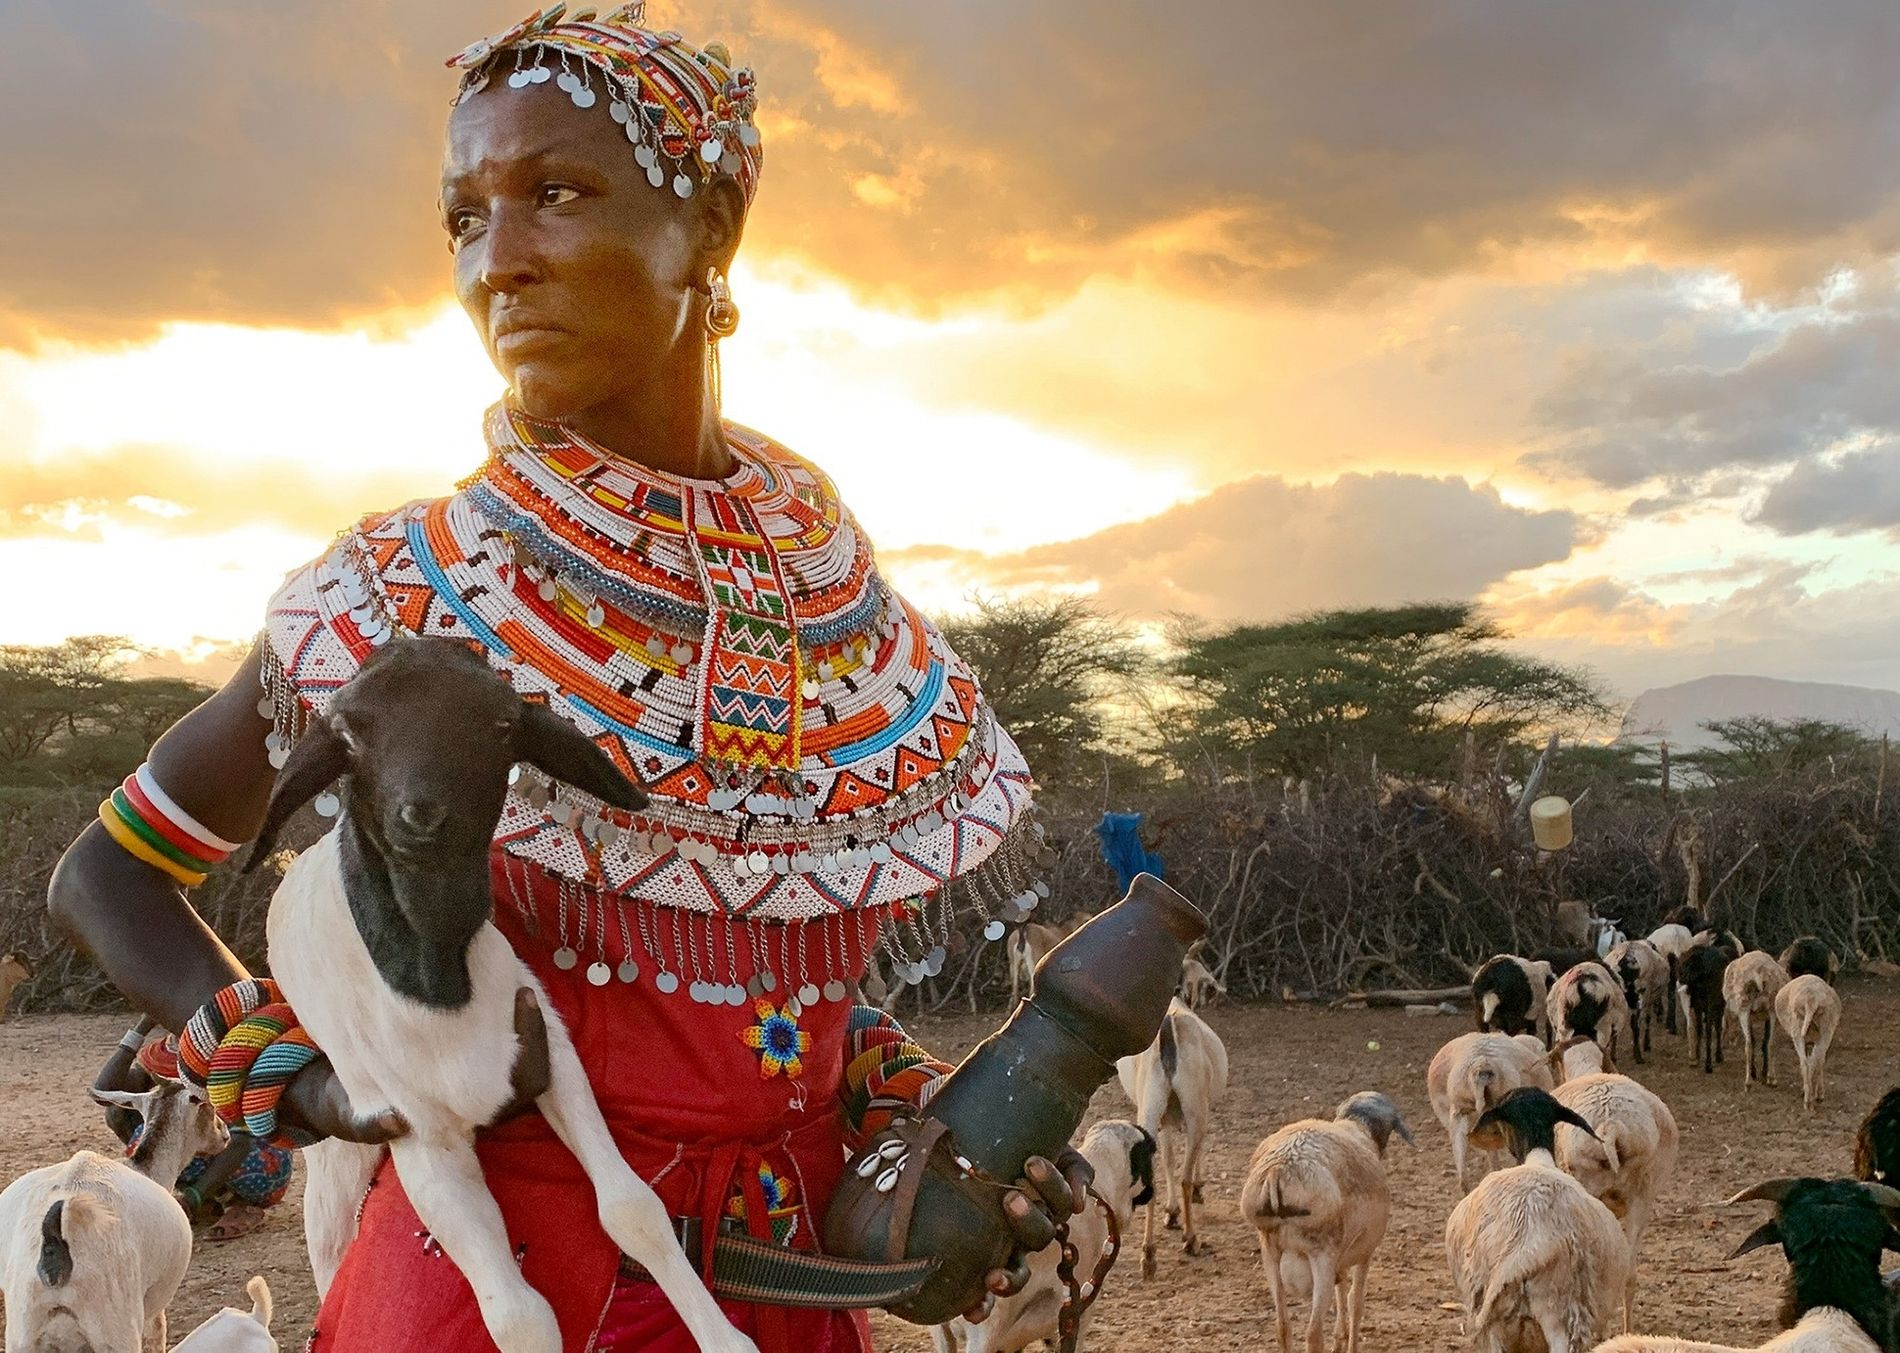 A Nairobi goat herder, in an image captured by Lynn Johnson.